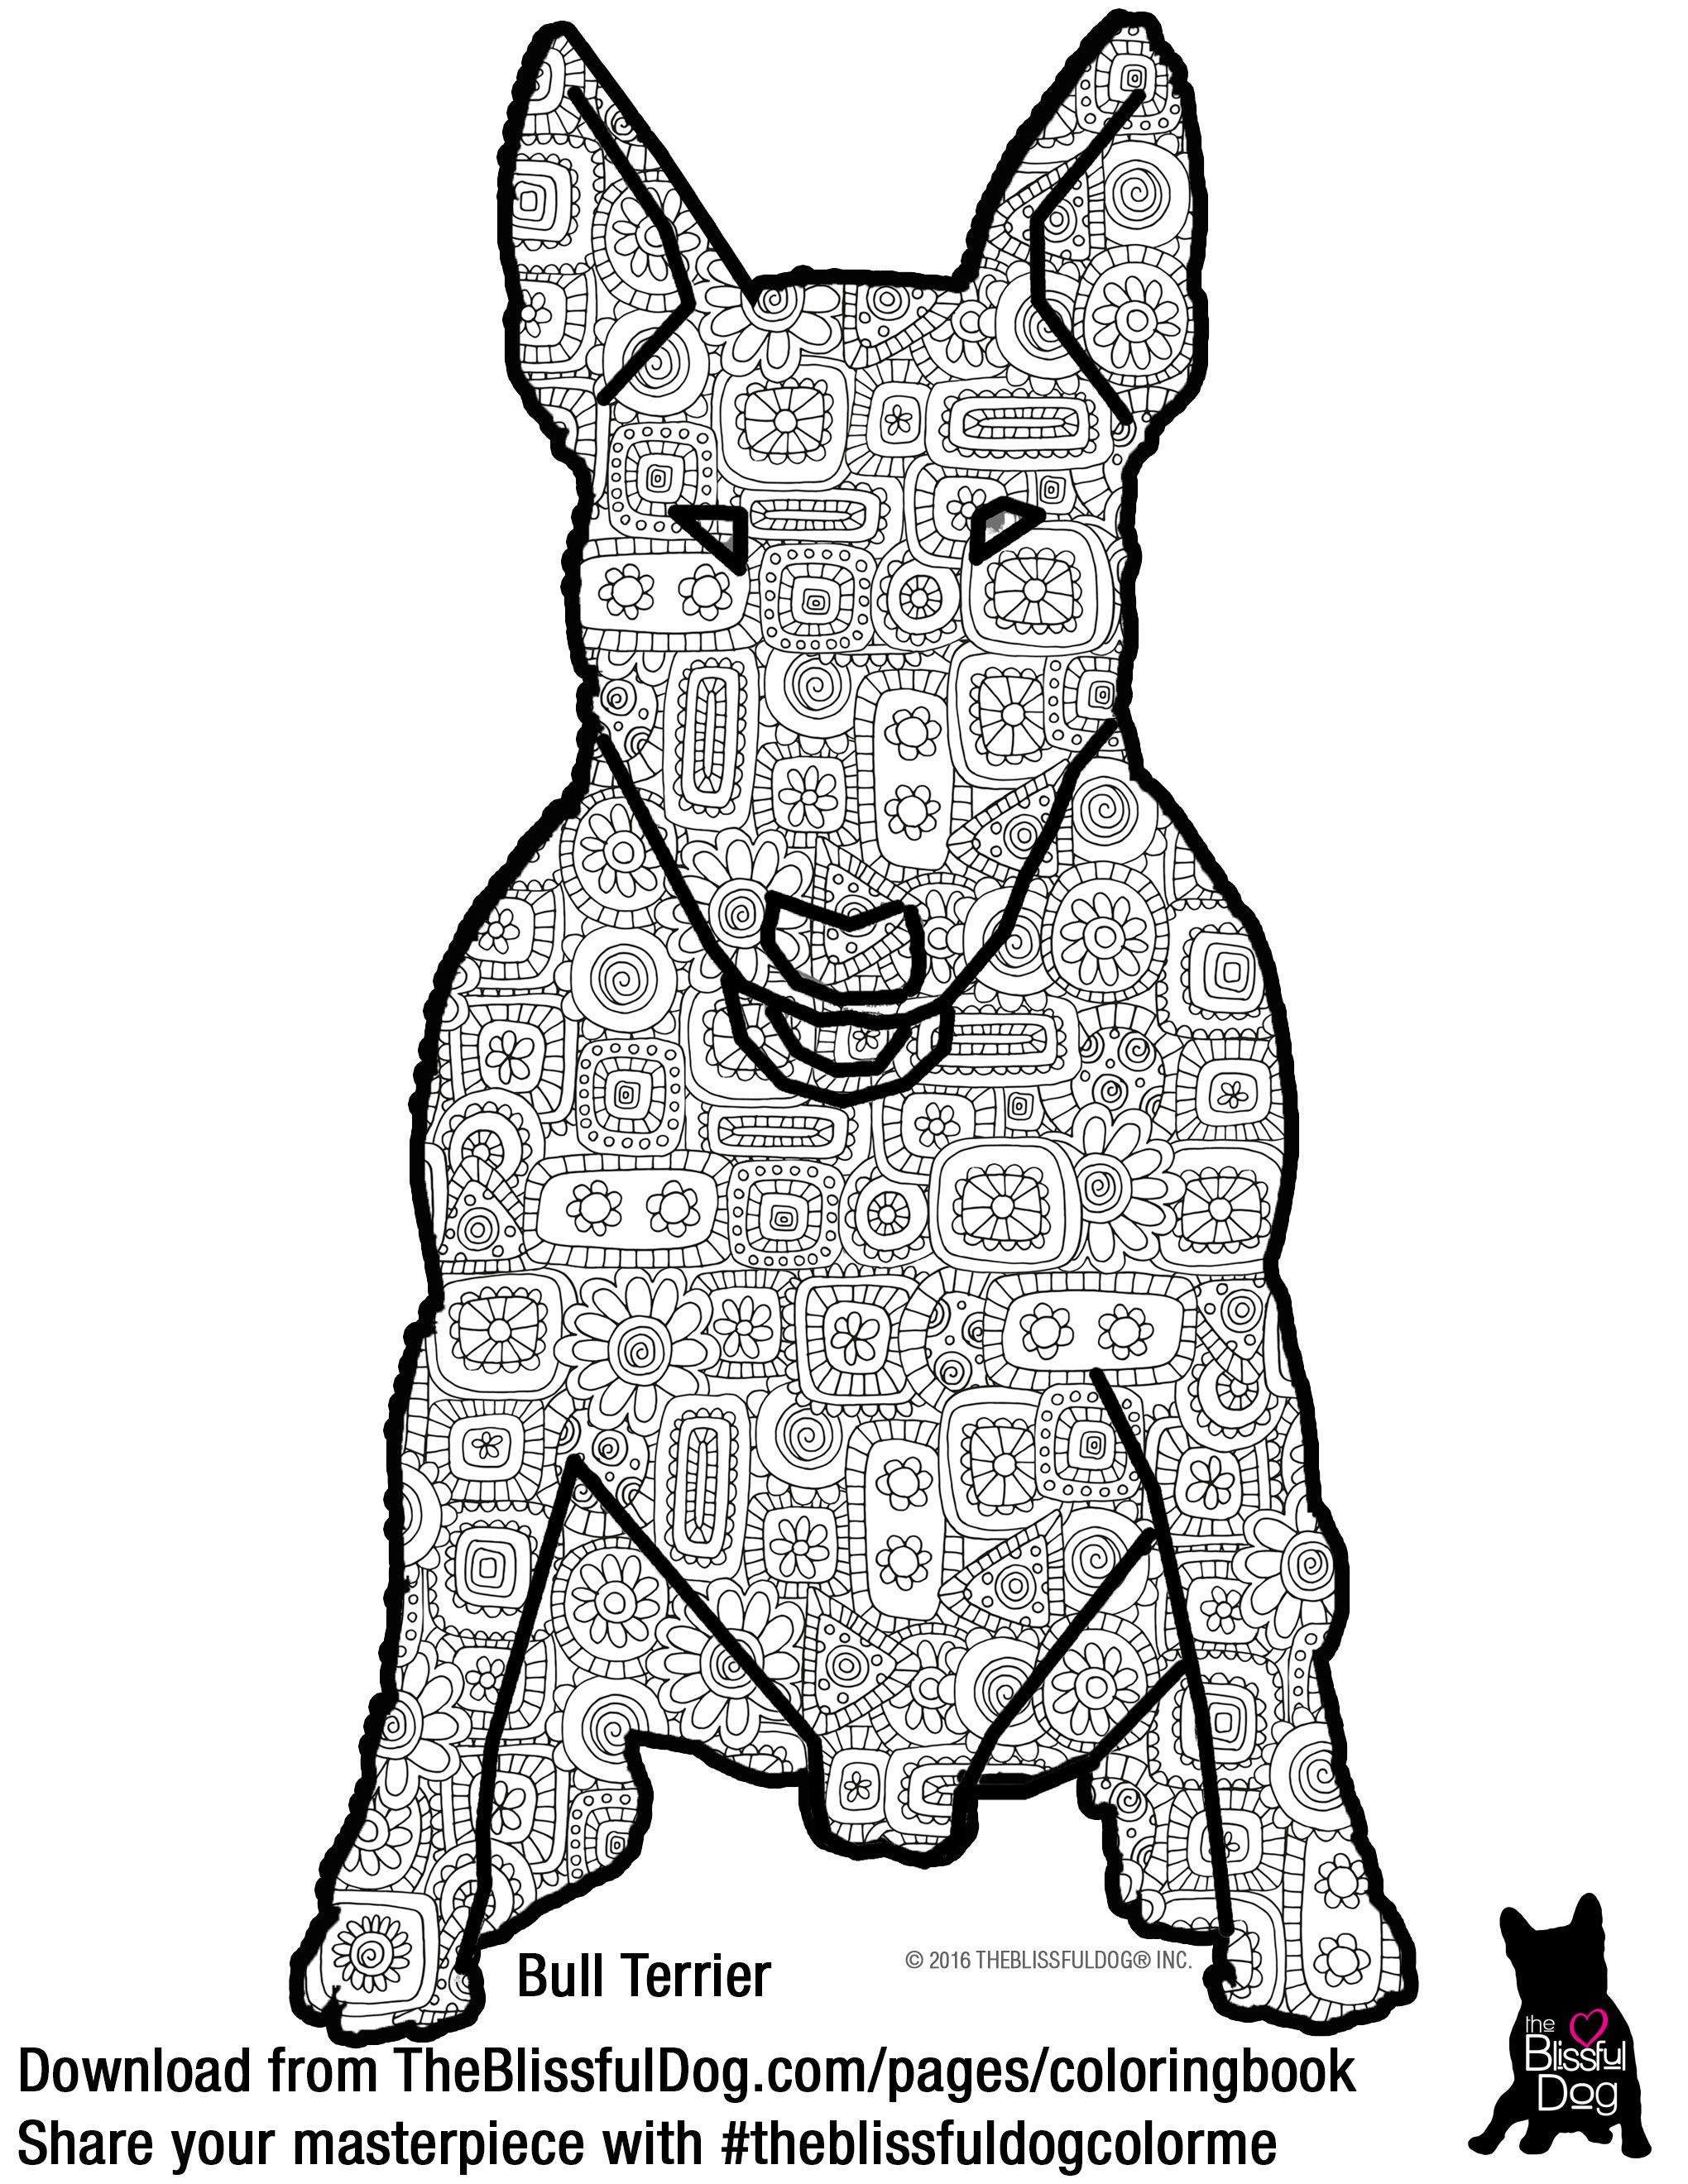 and here is the bull terrier coloring book page hi rez file fyi